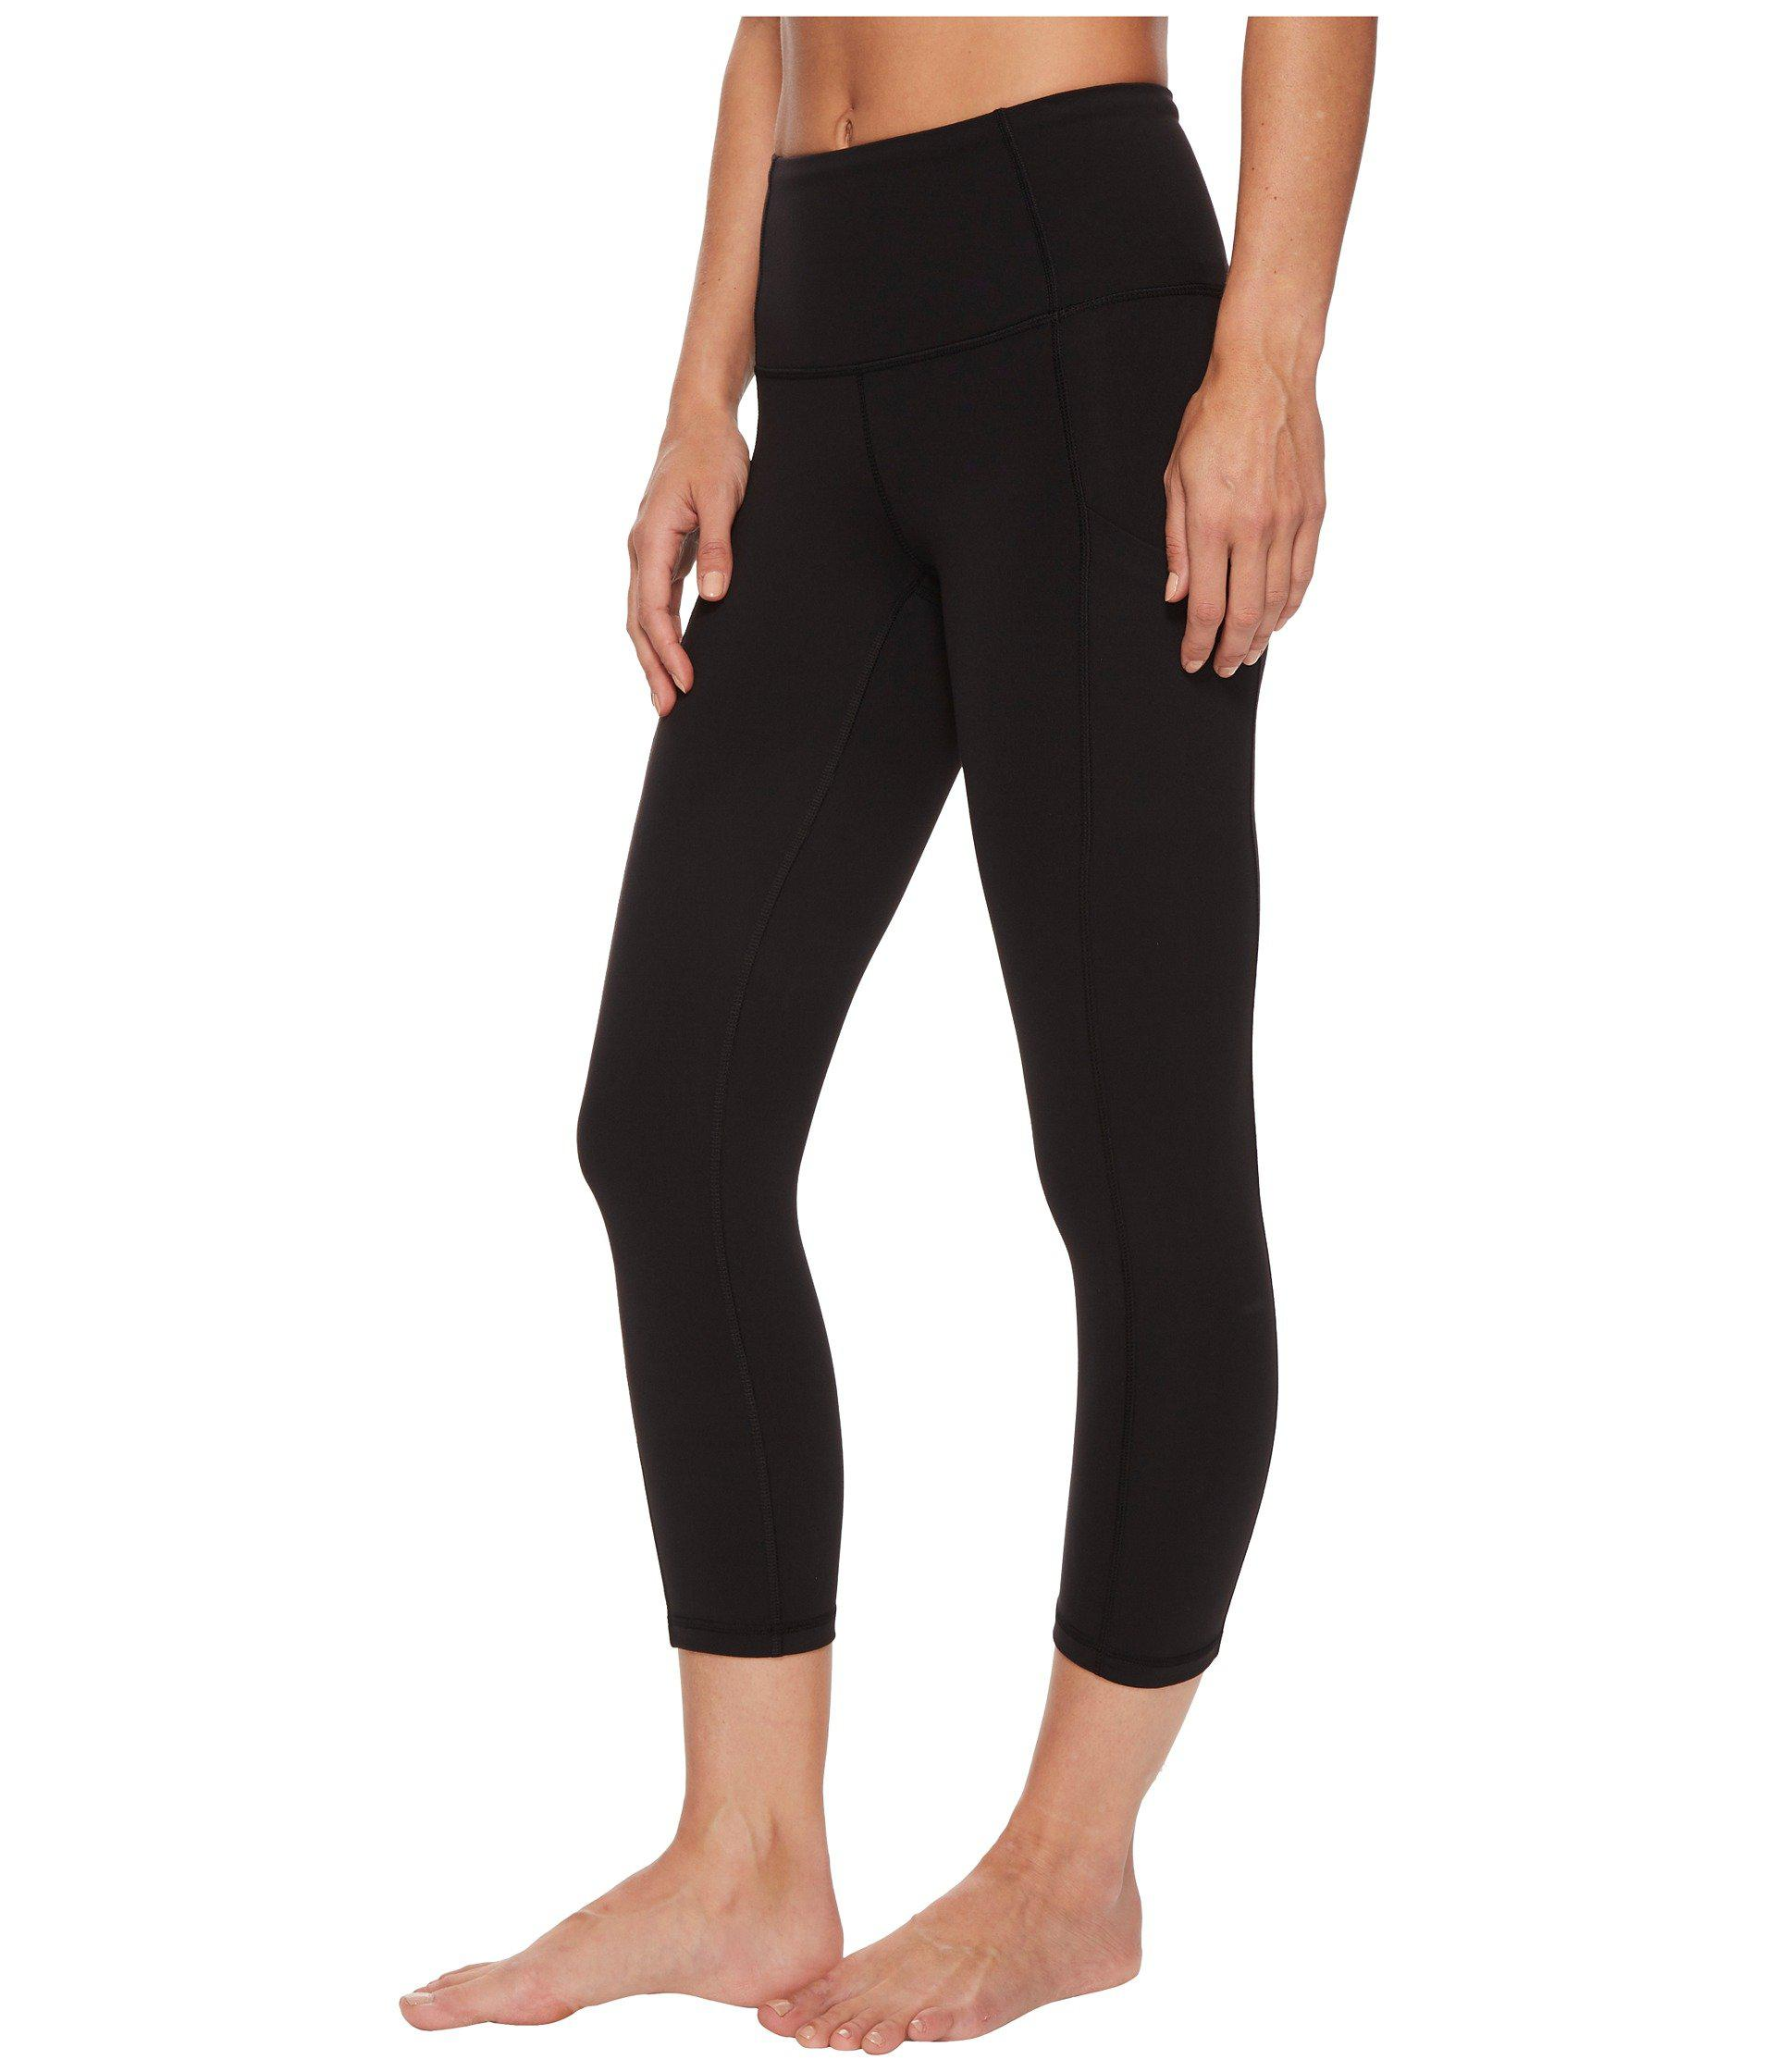 fc590013e79b3 Lyst - The North Face Motivation High-rise Pocket Crop Pants (tnf Black)  Women's Casual Pants in Black